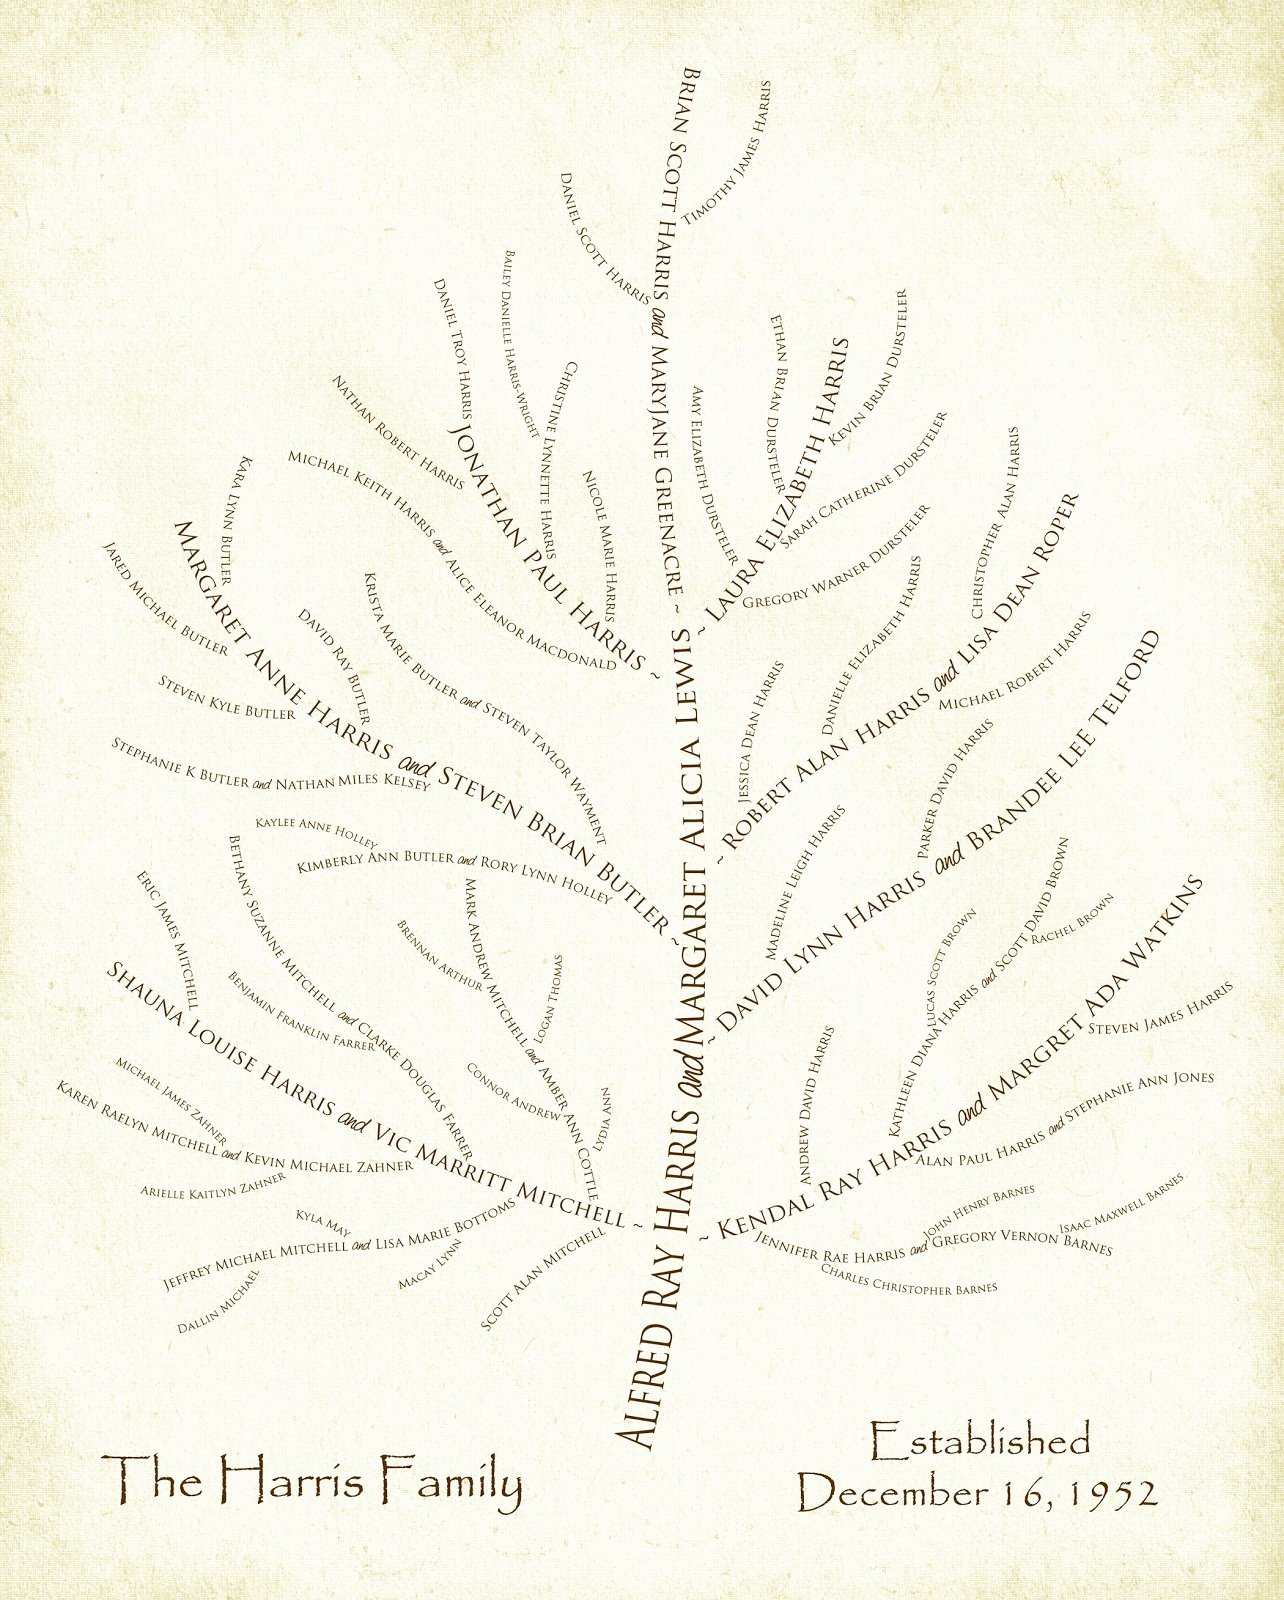 Family Tree Art Template Inspirational Smile Like You Mean It My Branches Custom Family Art Work